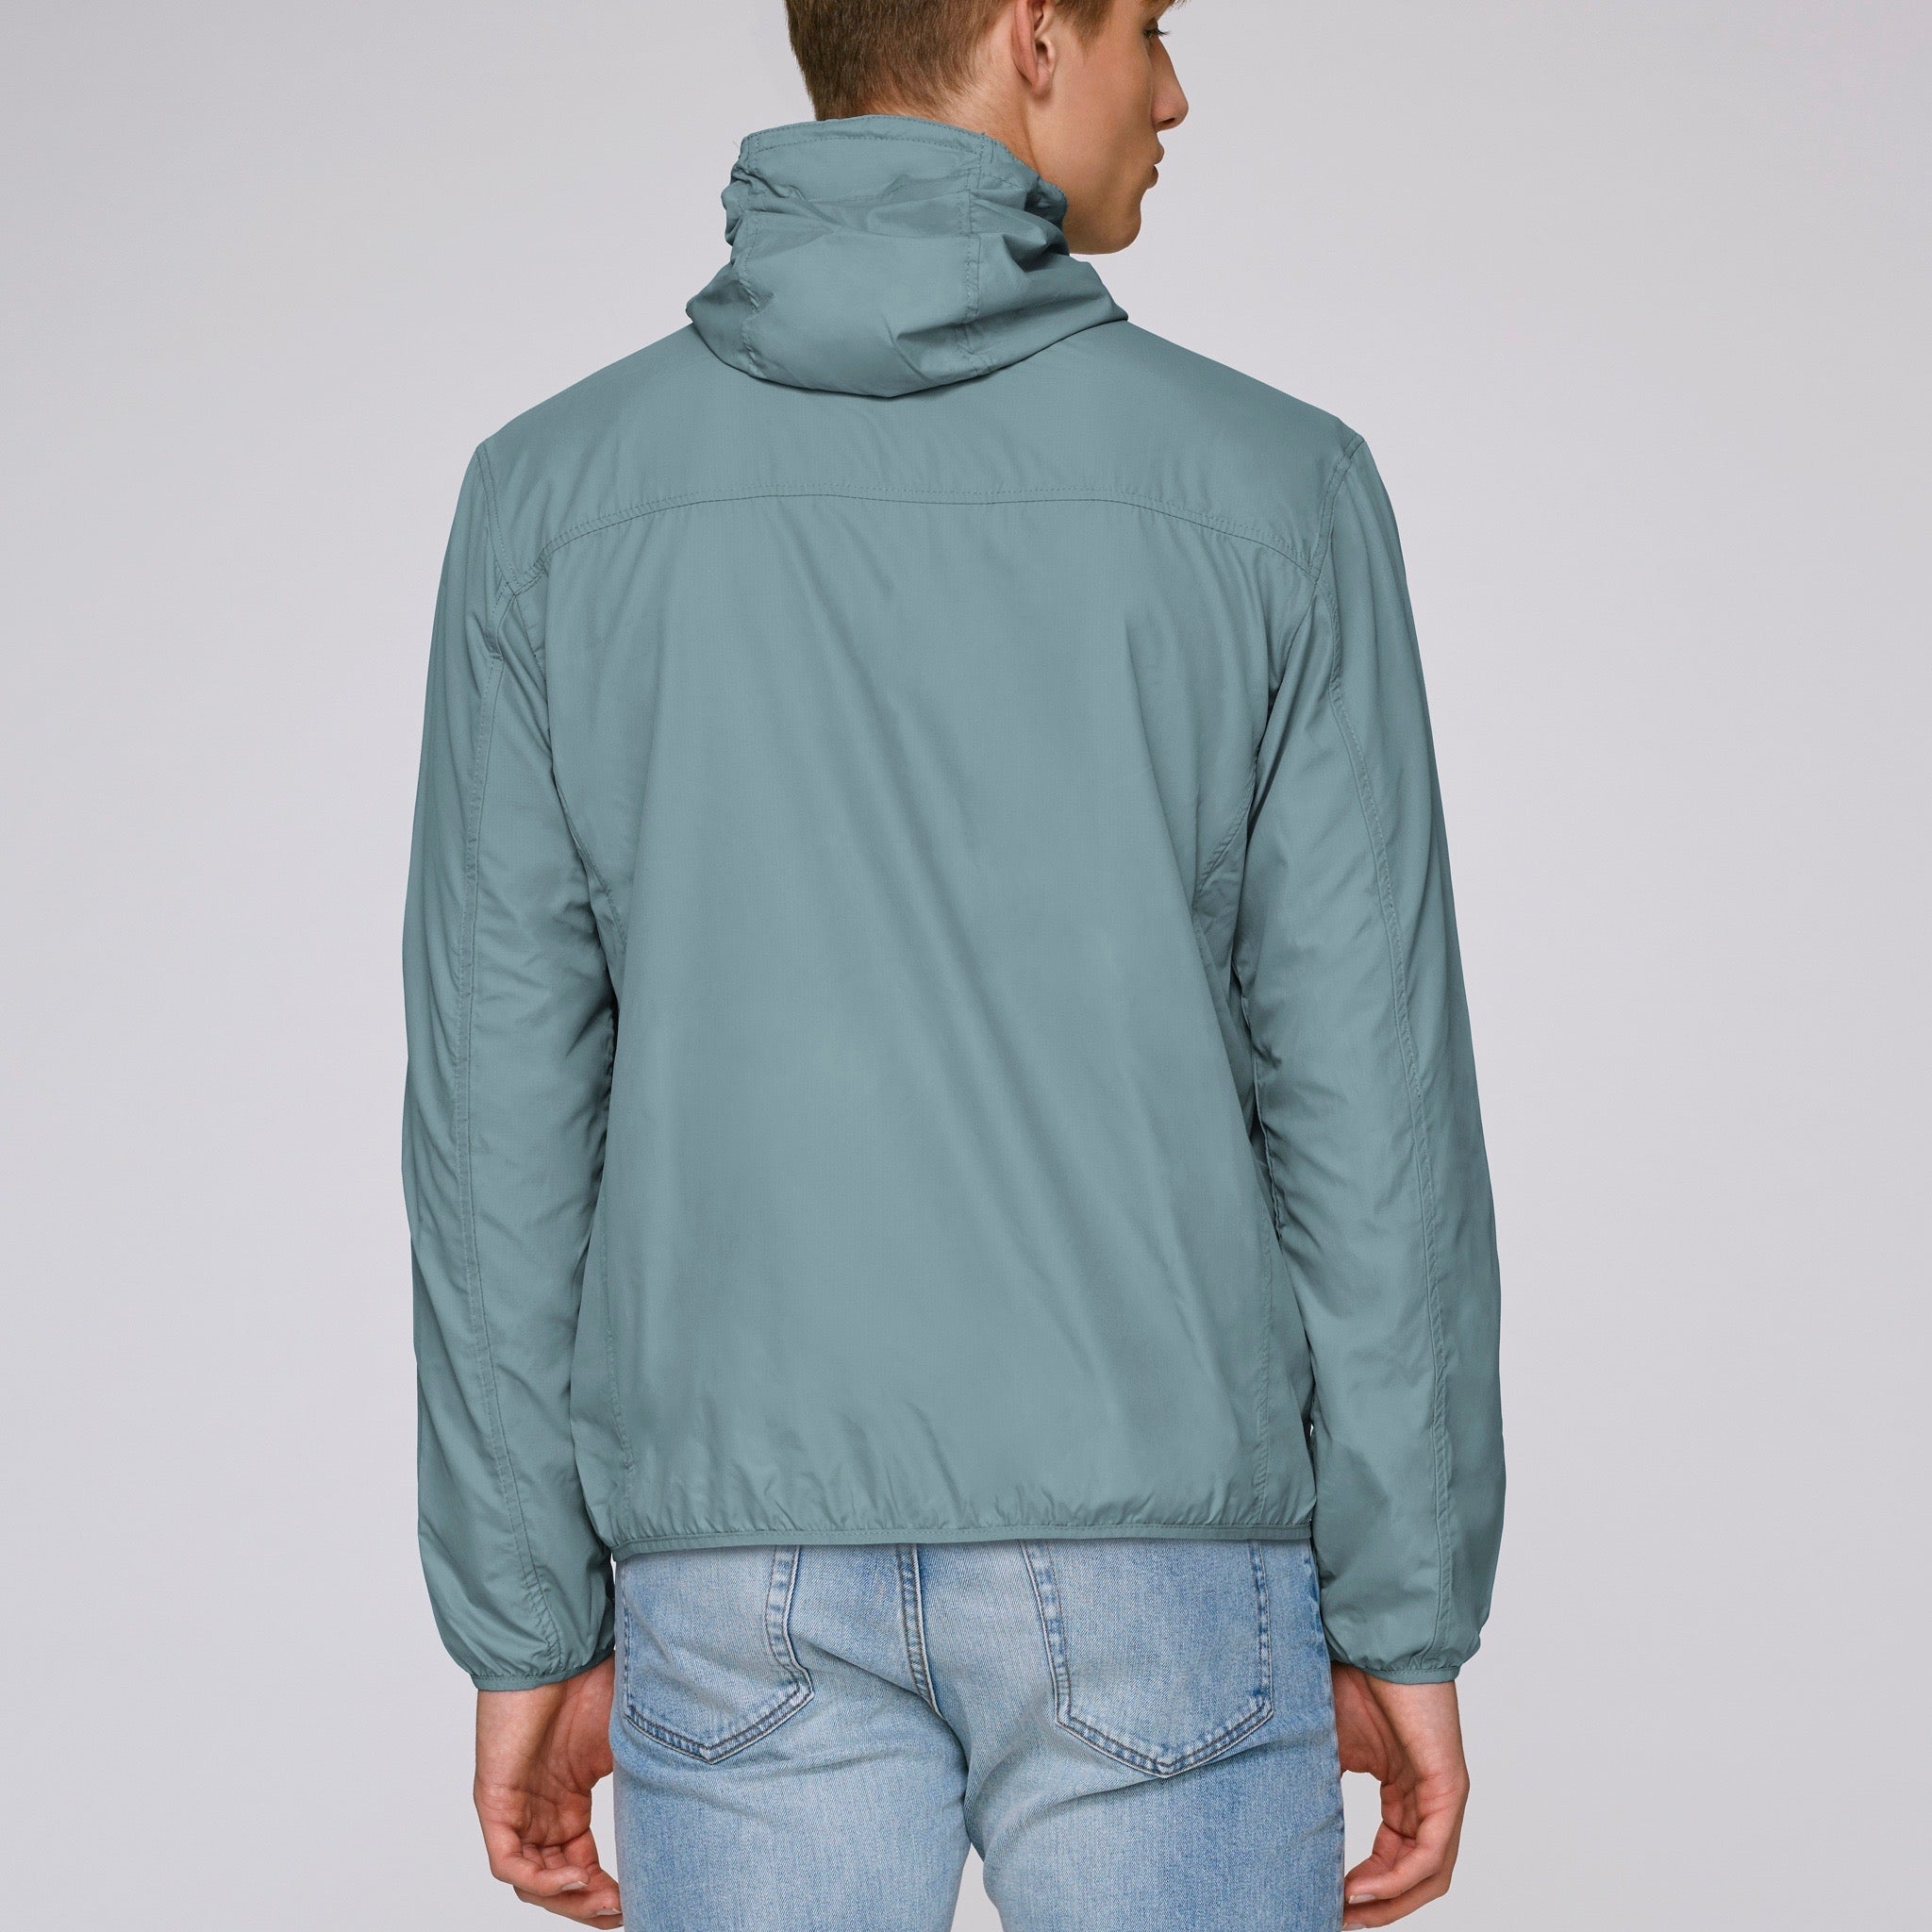 Born Essentials Hooded Light Wind Jacket - Light Blue